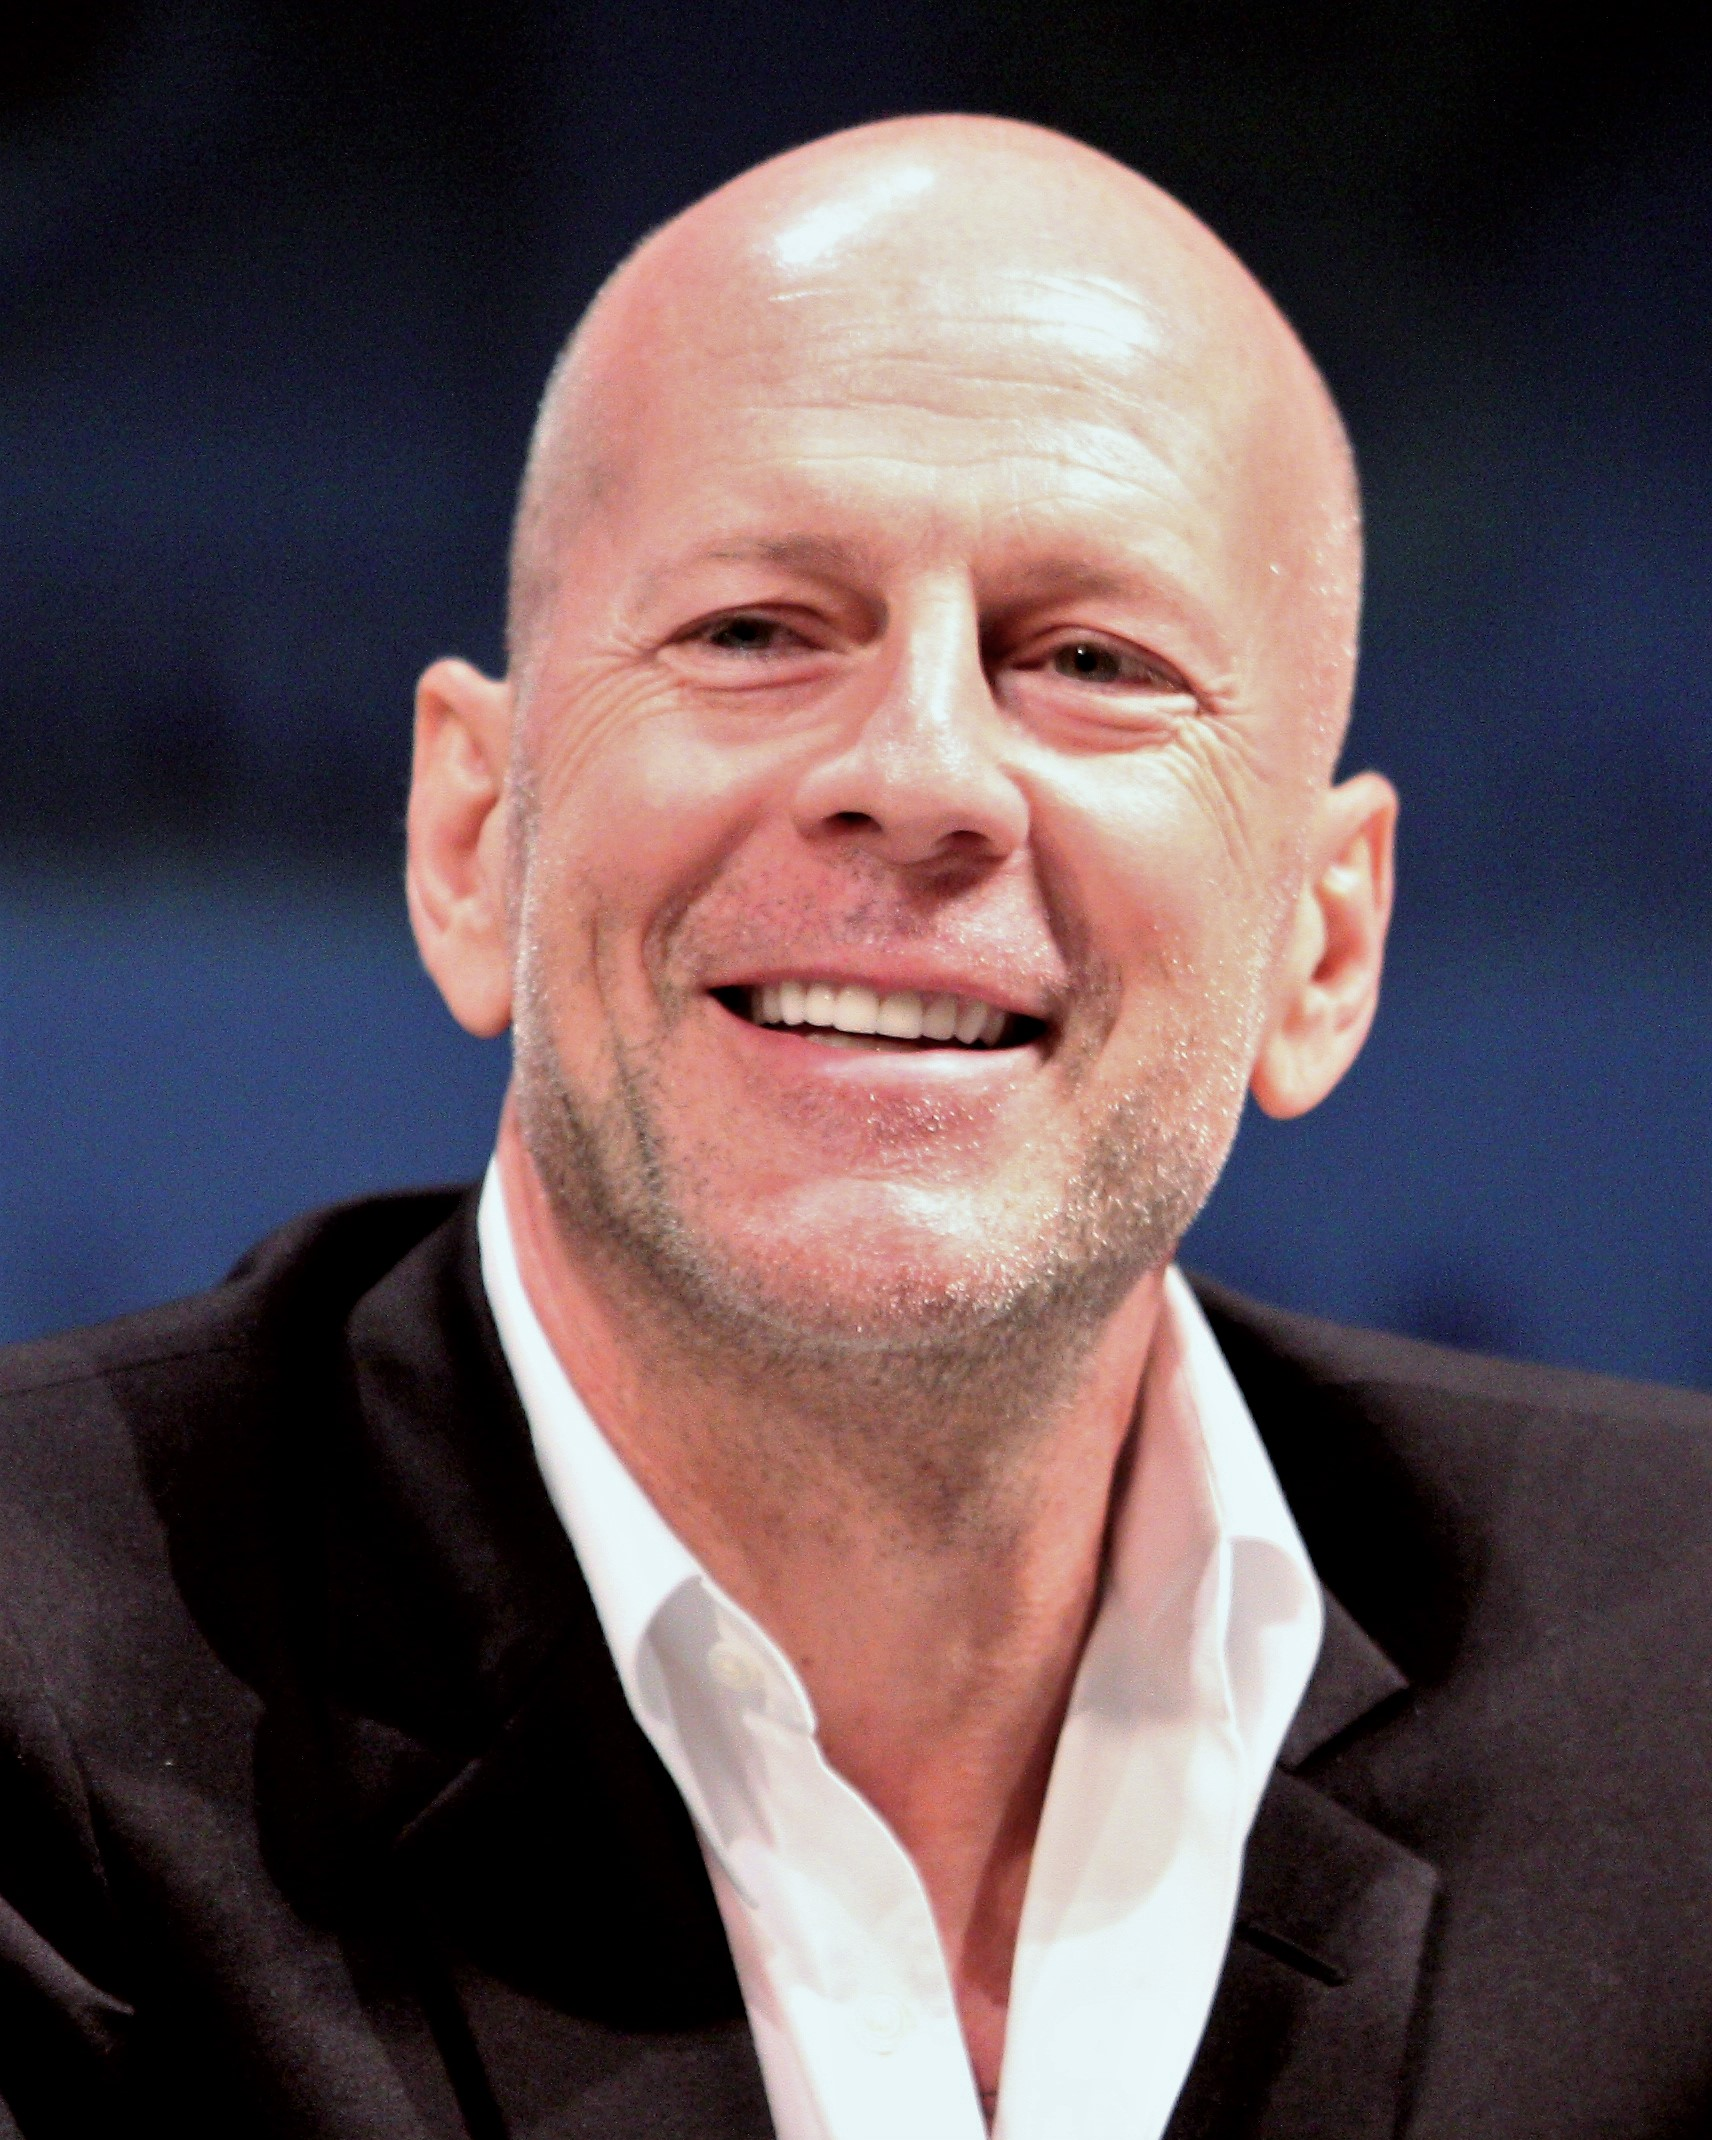 Depiction of Bruce Willis